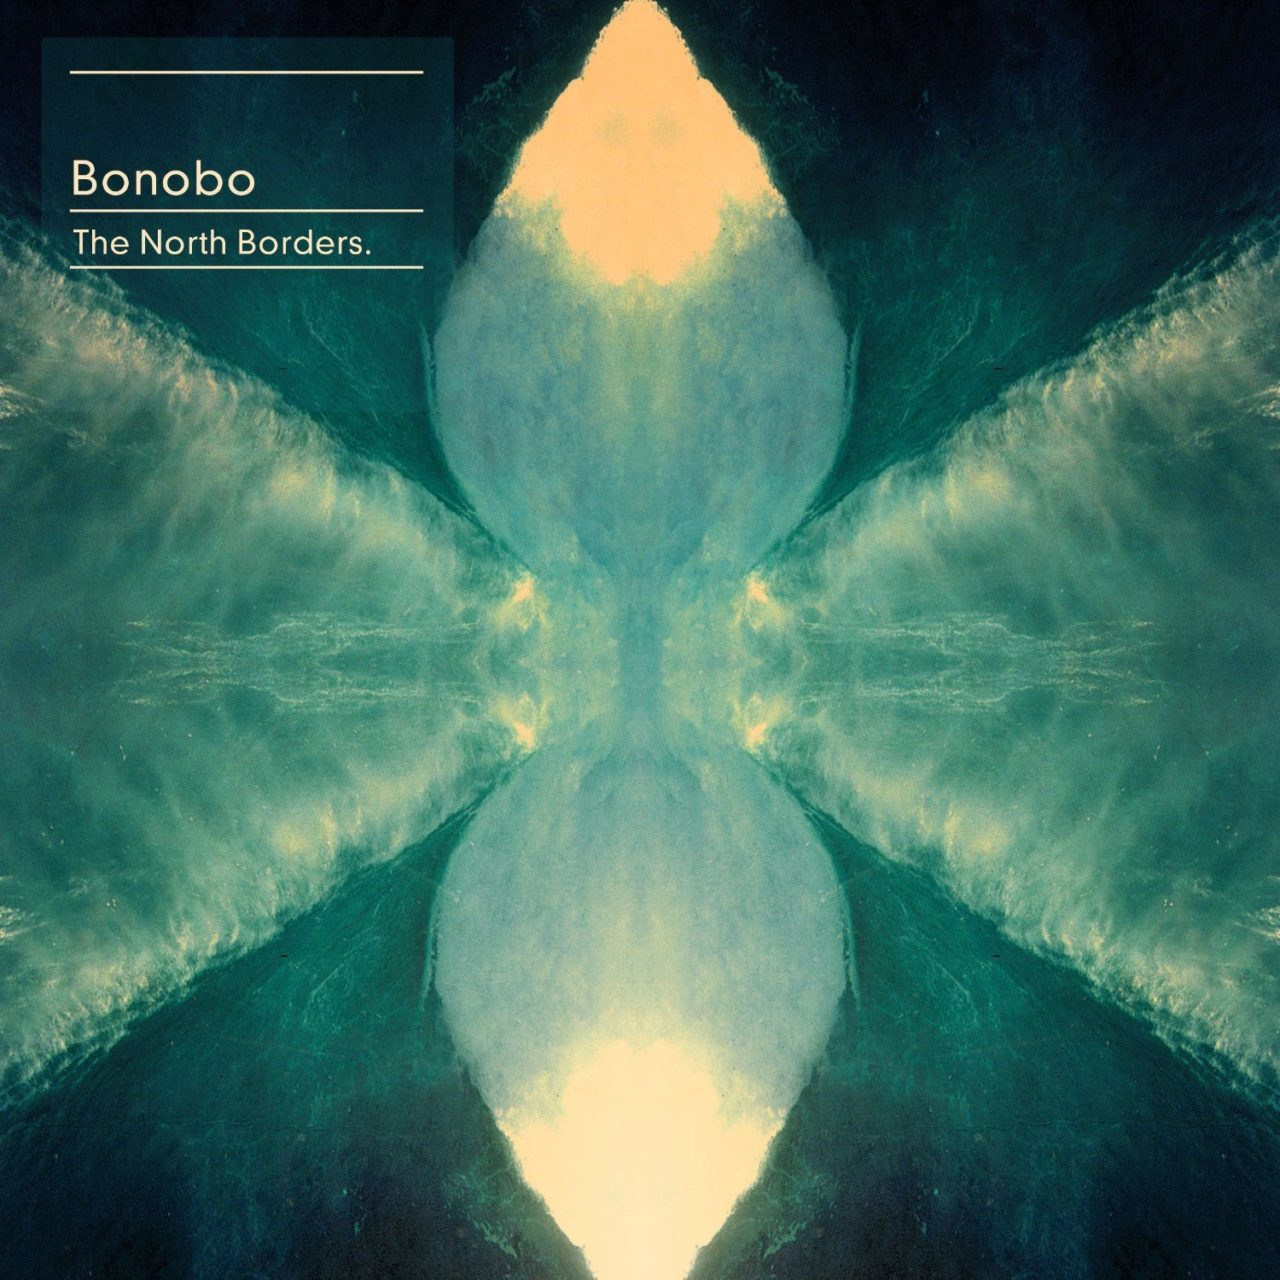 bonobo-the-north-borders-1616101349